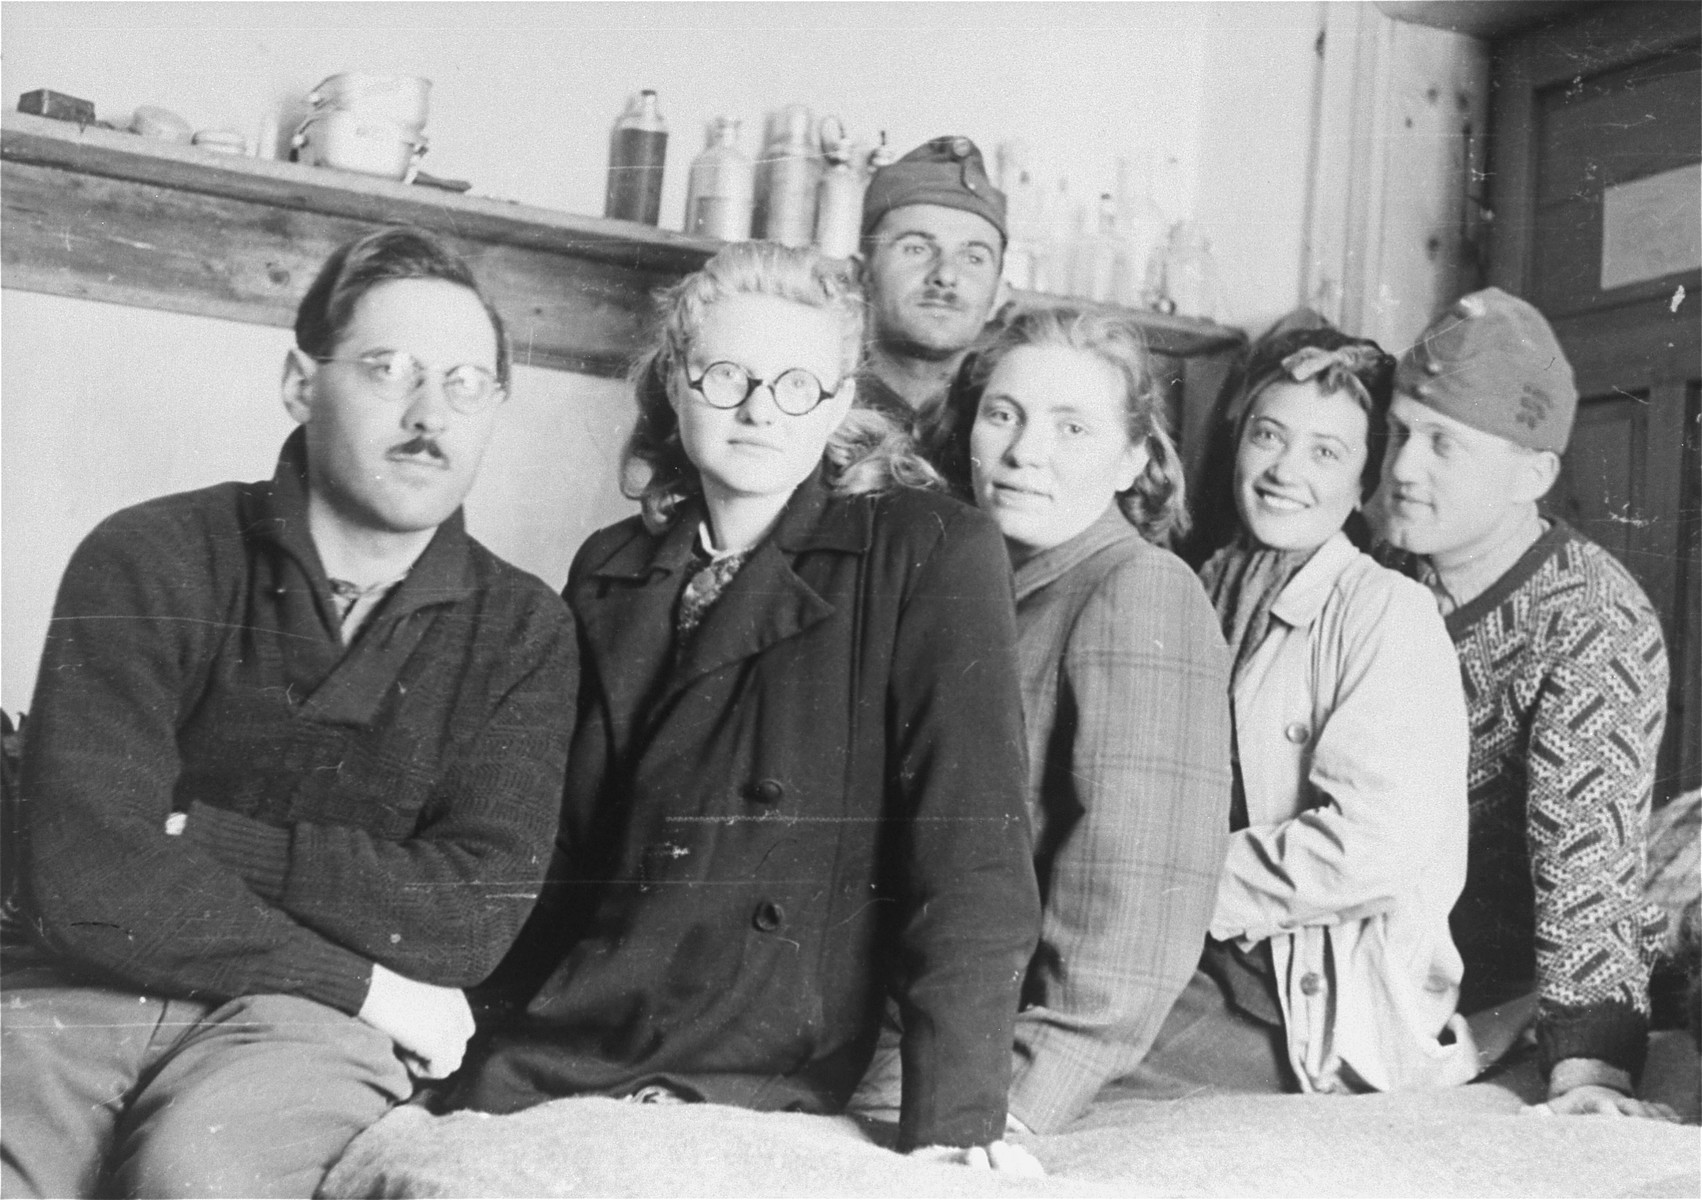 Local Jewish women pose for a photo with Dr. Adalbert Feher (L) and other Jewish conscripts in Company 108/57 of the Hungarian Labor Service.